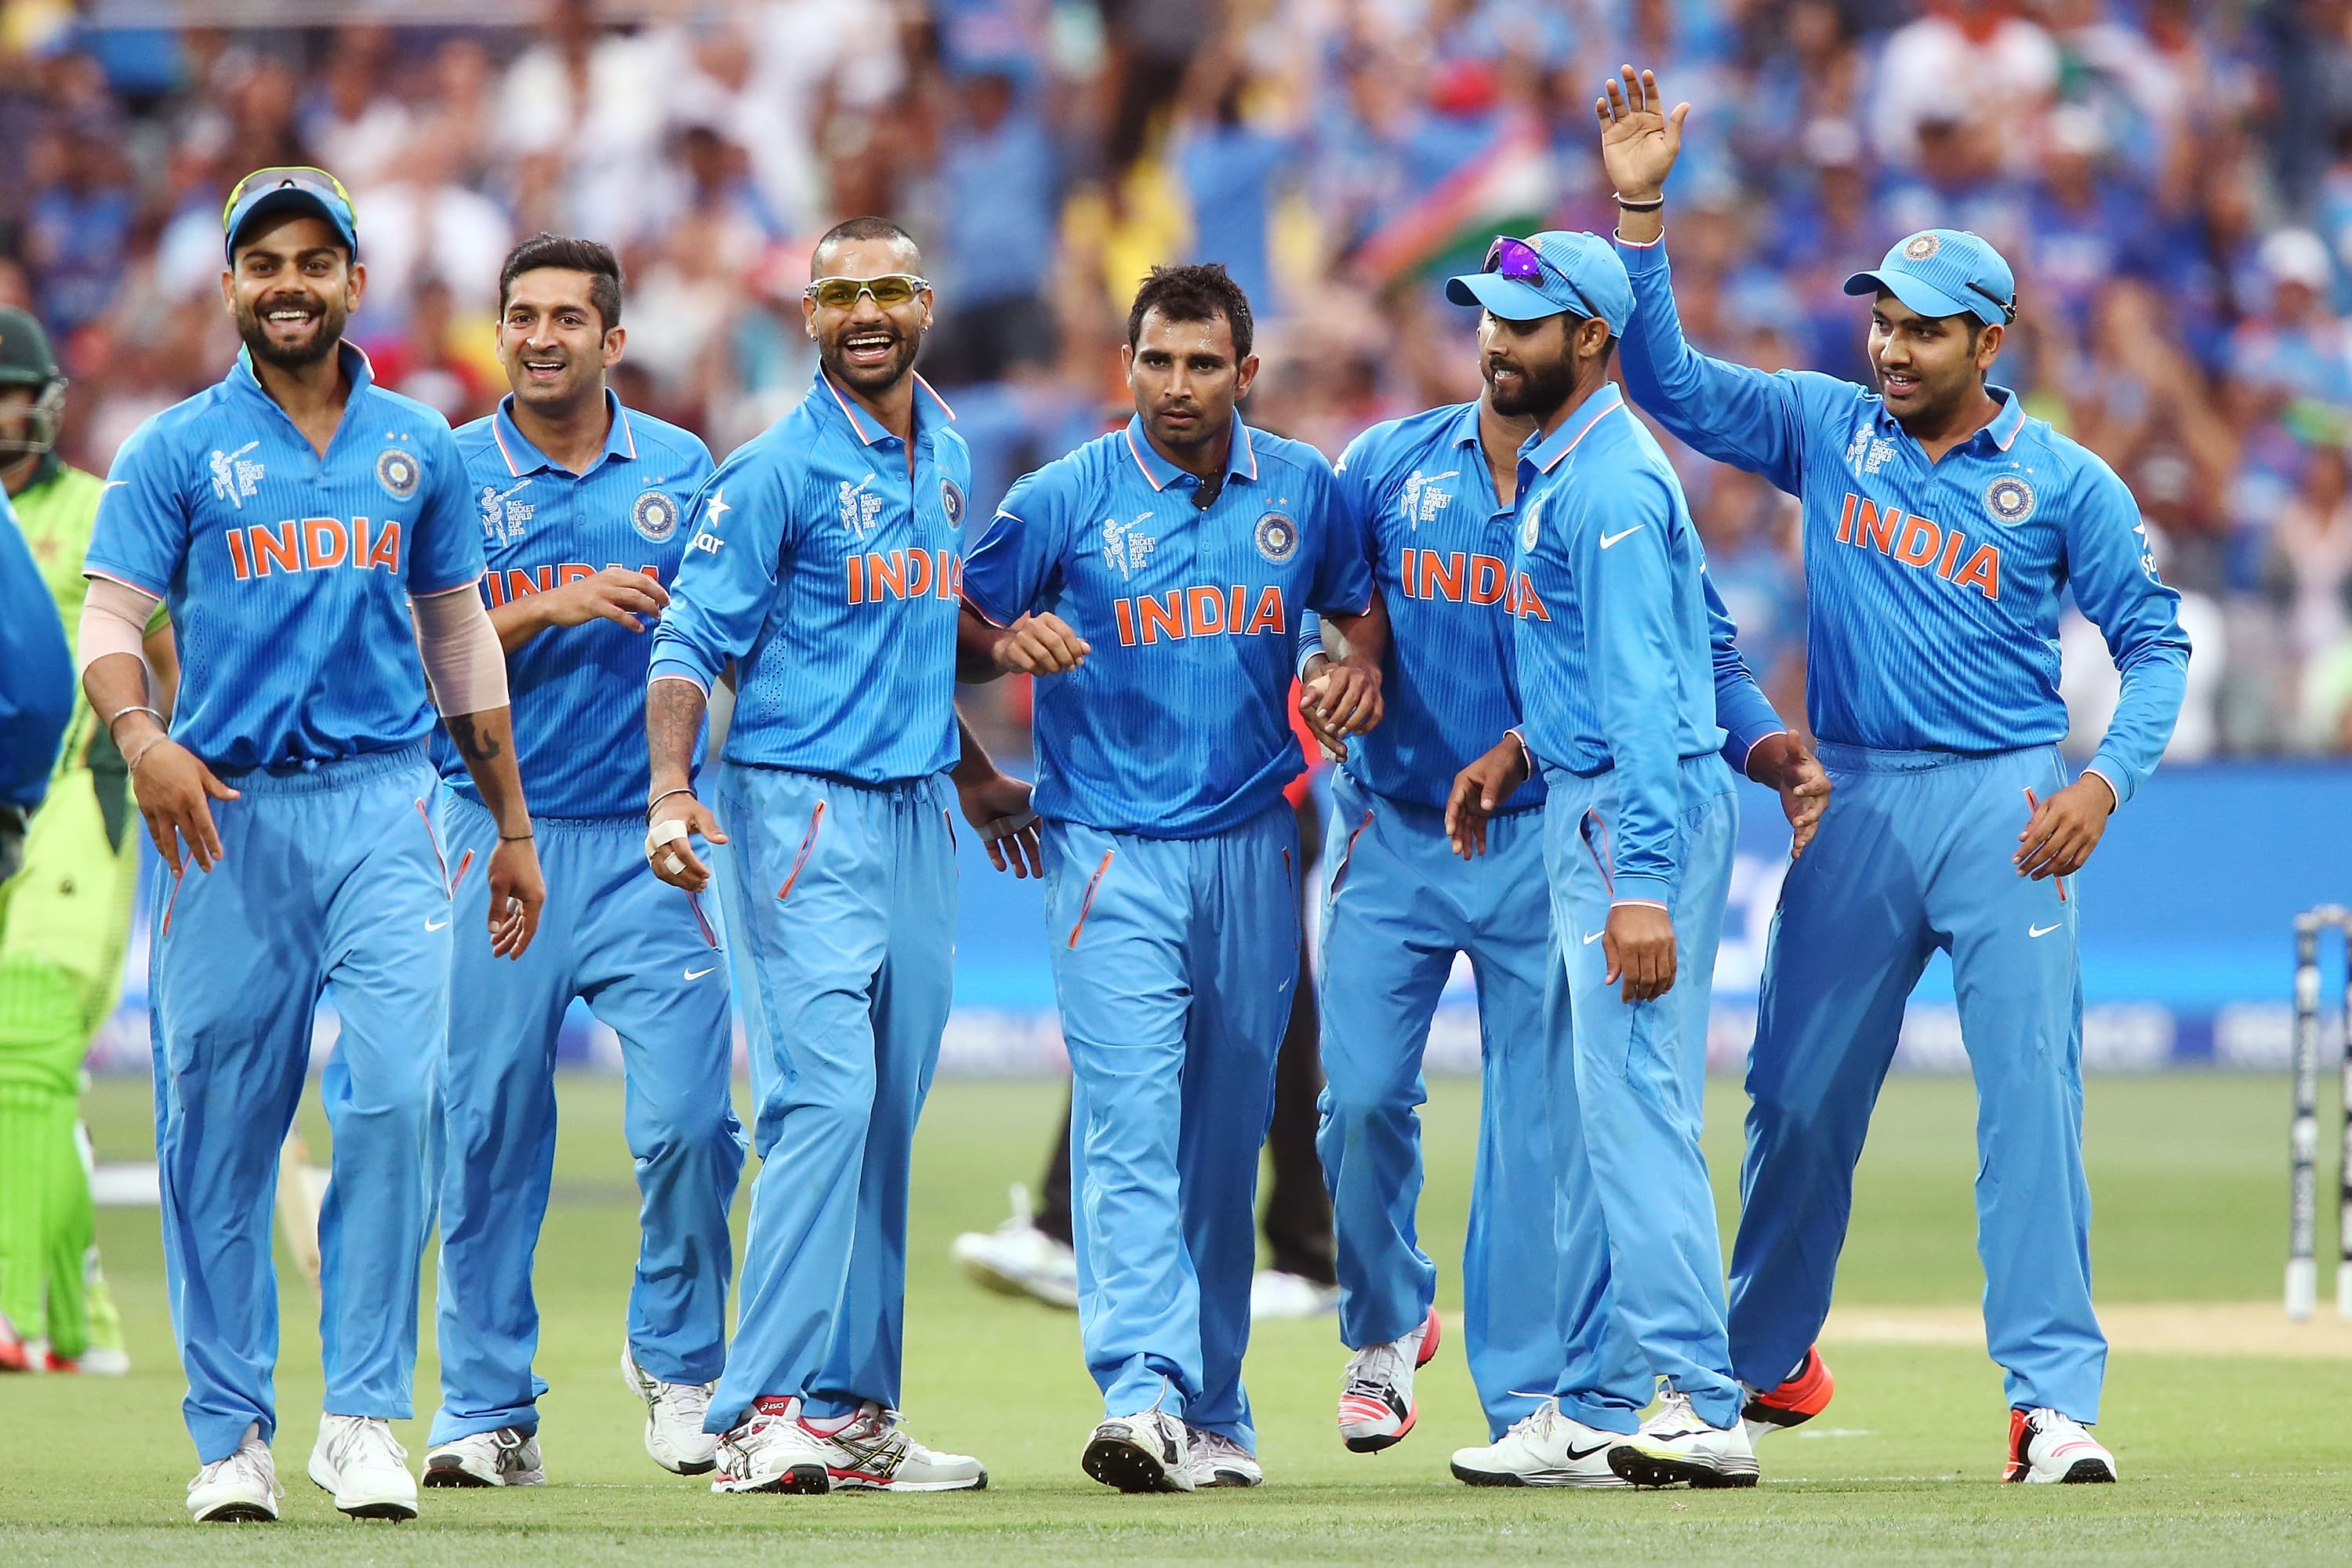 Indian Cricket Team To Tour Bangladesh: ICC Cricket World Cup 2015: India Make The Long Travel